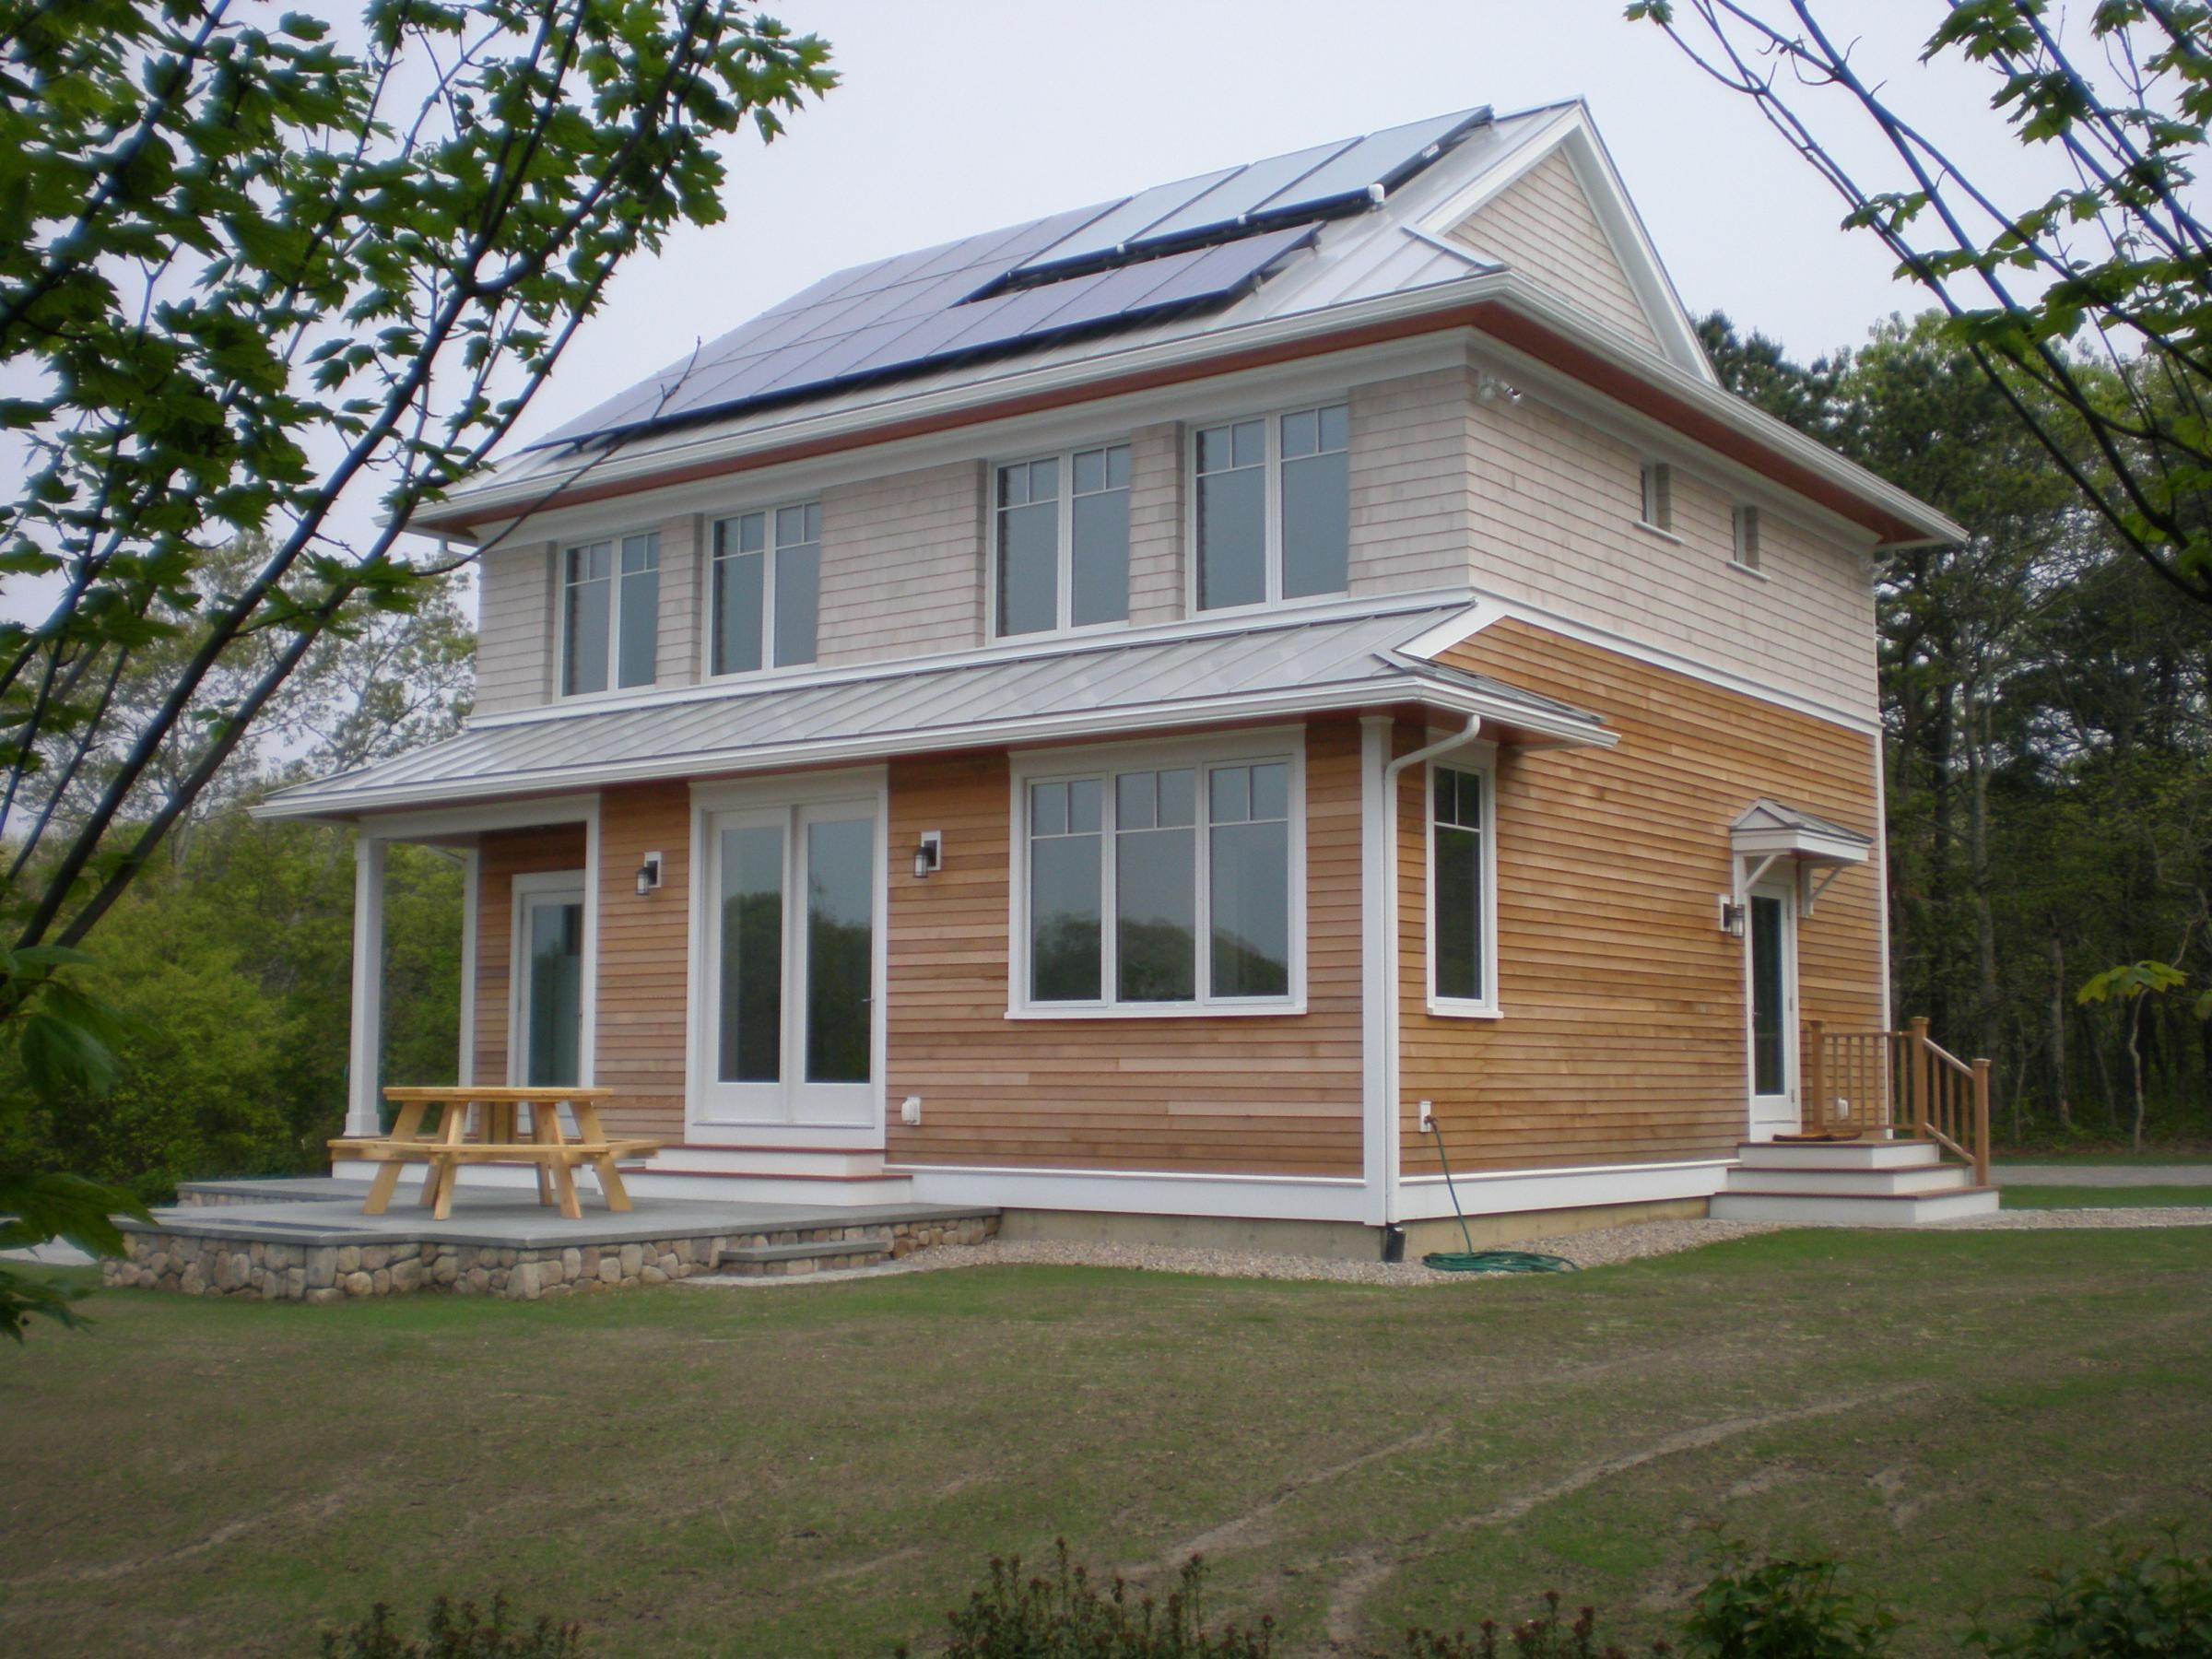 Nesea blog passive house design - Passive houses in germany energy and financial efficiency ...